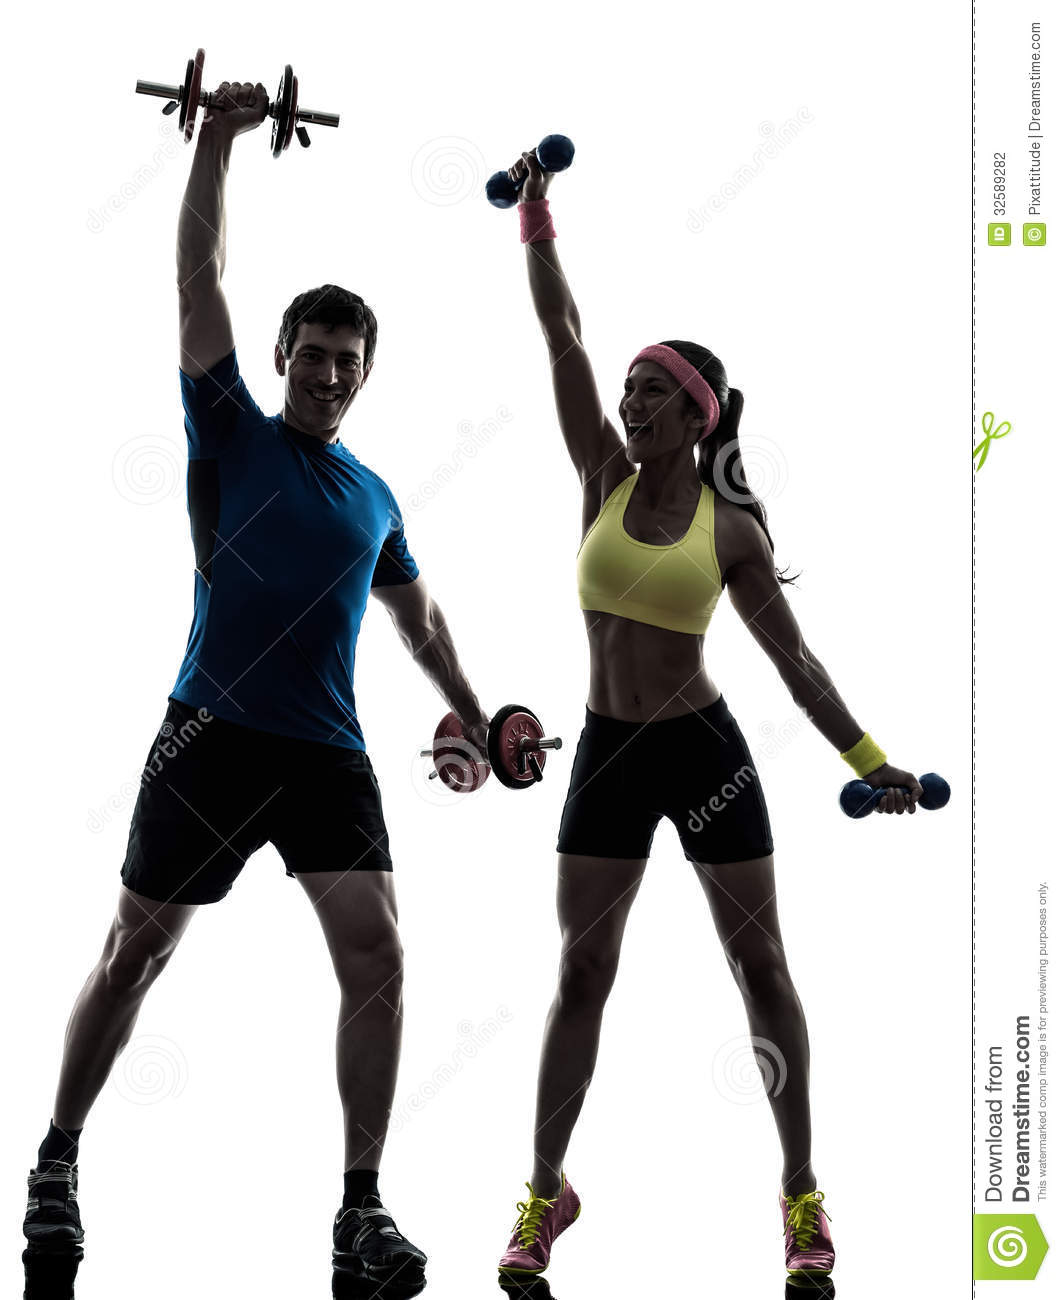 Workout Photography: Woman Exercising Fitness Workout With Man Coach Stock